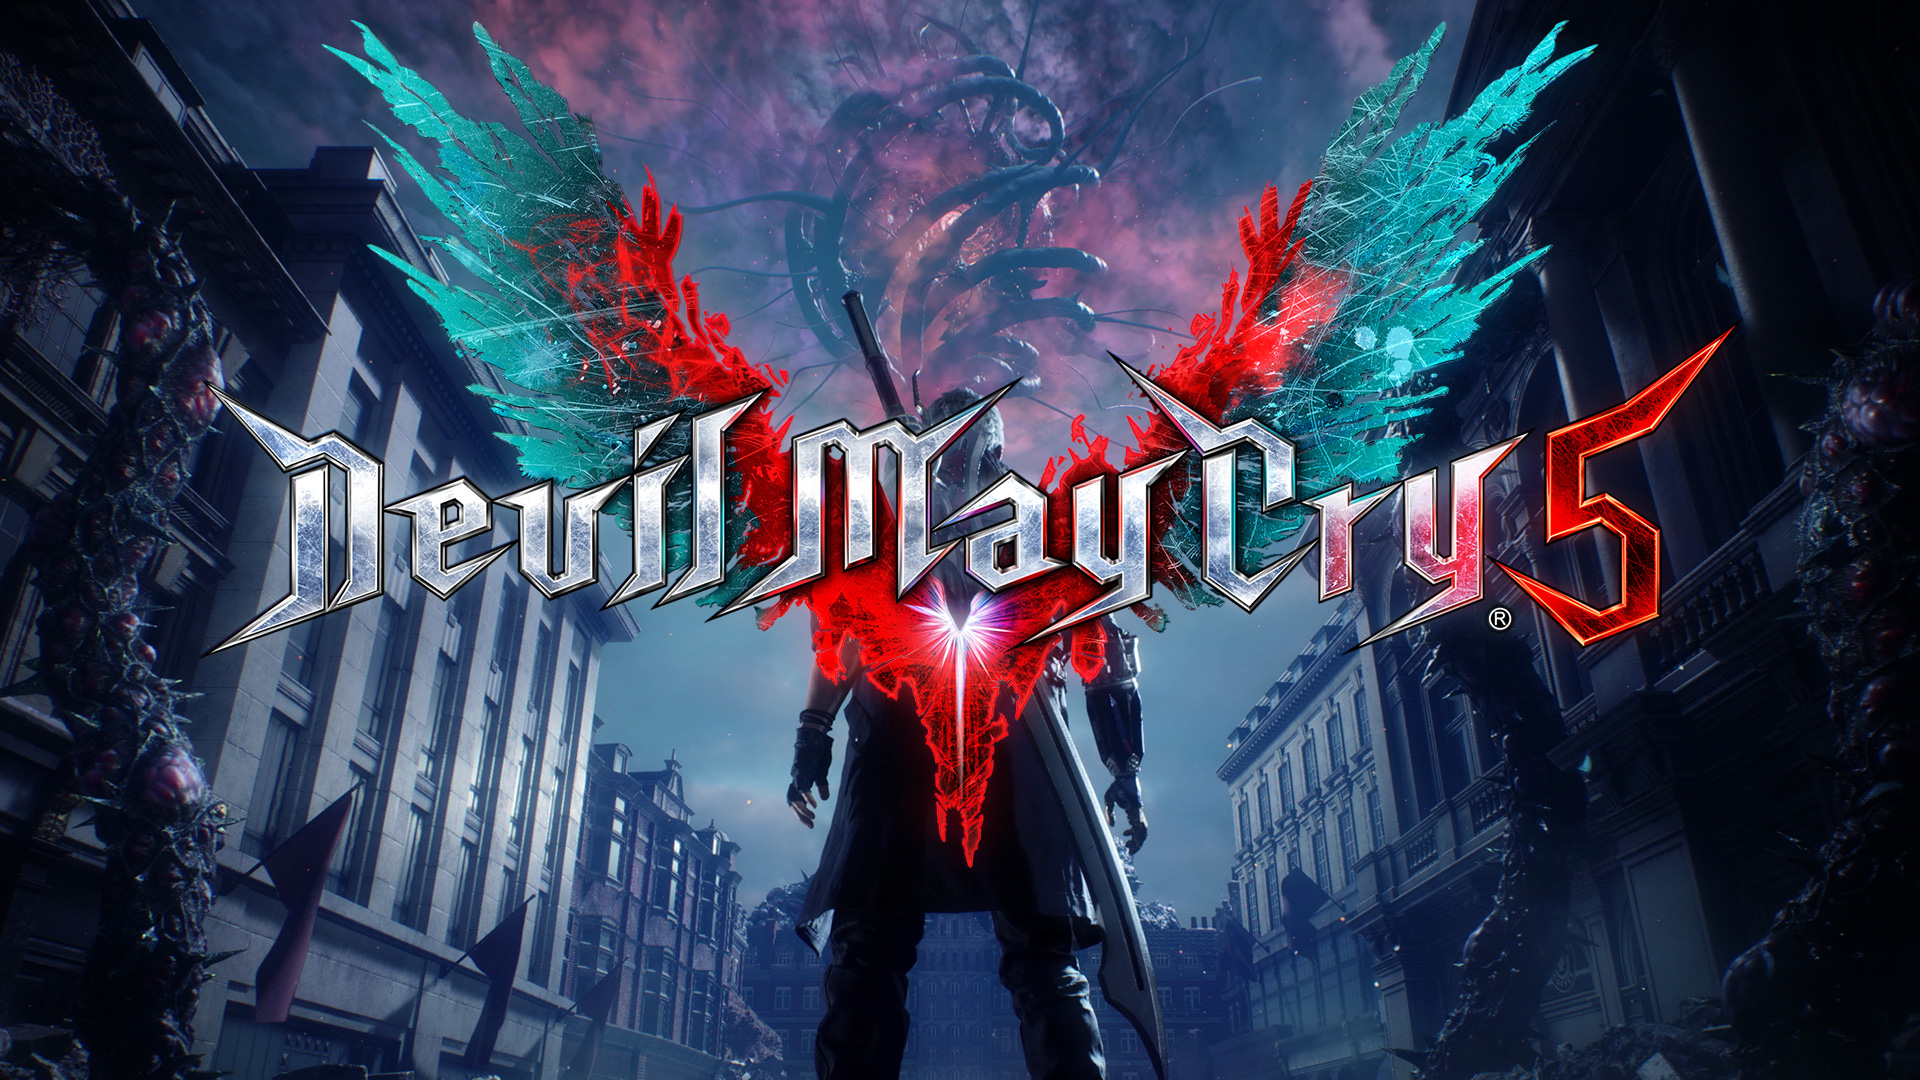 Devil May Cry 5 - PGW 2018 Preview Article